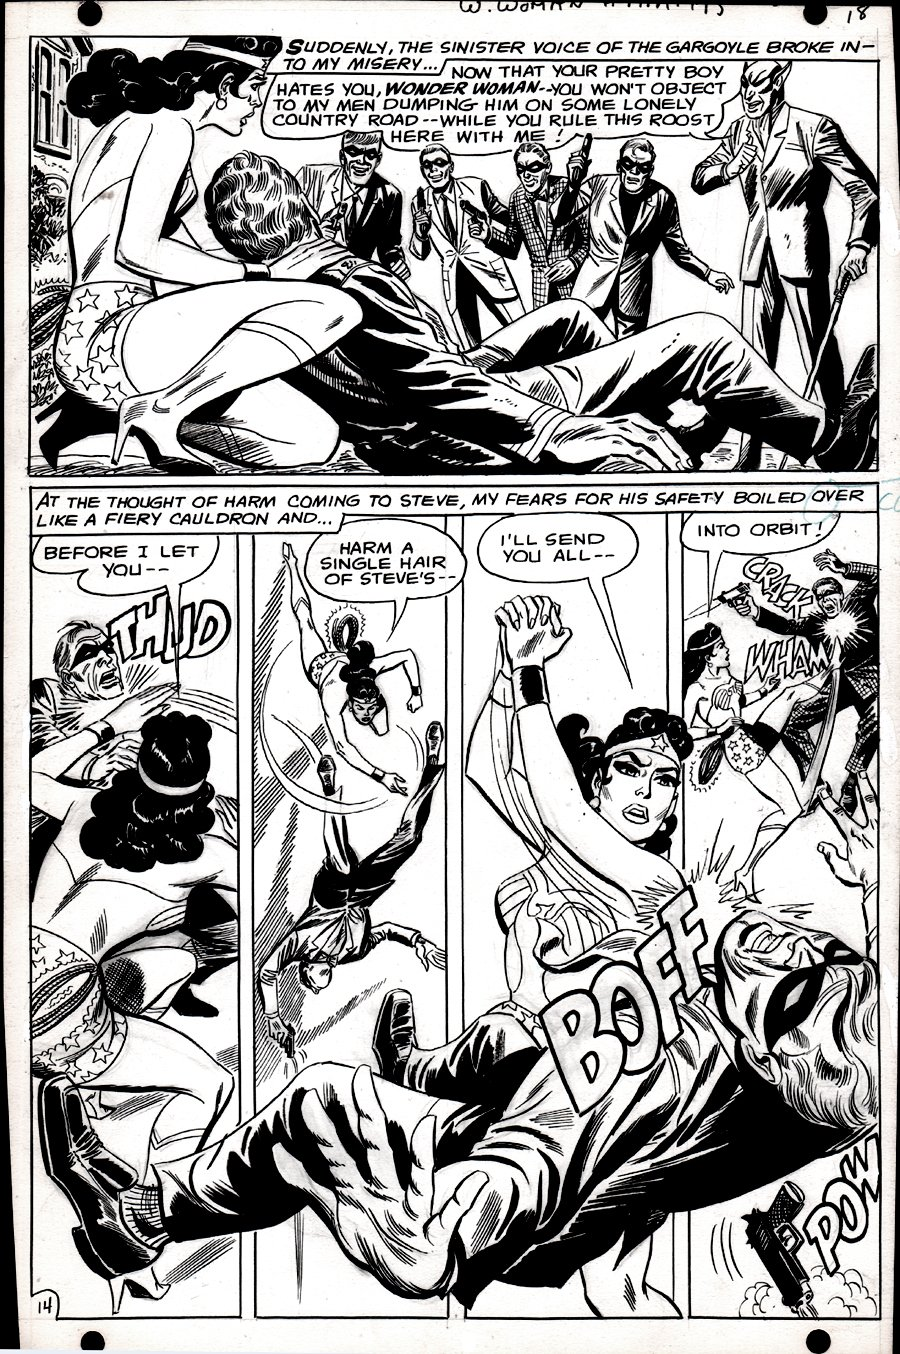 Wonder Woman #175 p 14 (SILVER AGE, WONDER WOMAN IN EVERY PANEL BATTLES MR. GARGOYLE'S GANG!) 1967